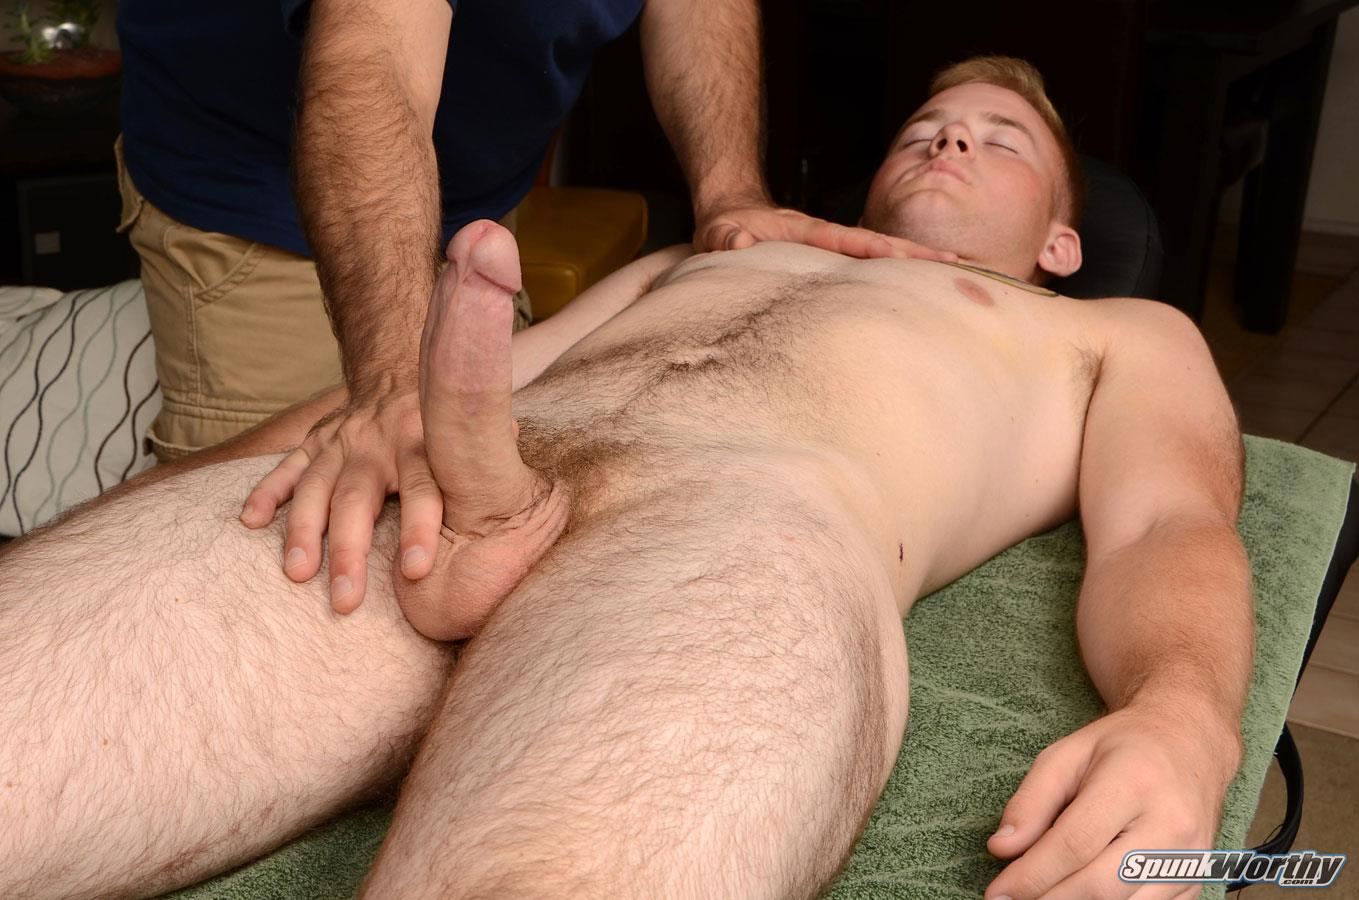 Amatuer gay straight blowjob xxx rough men 4